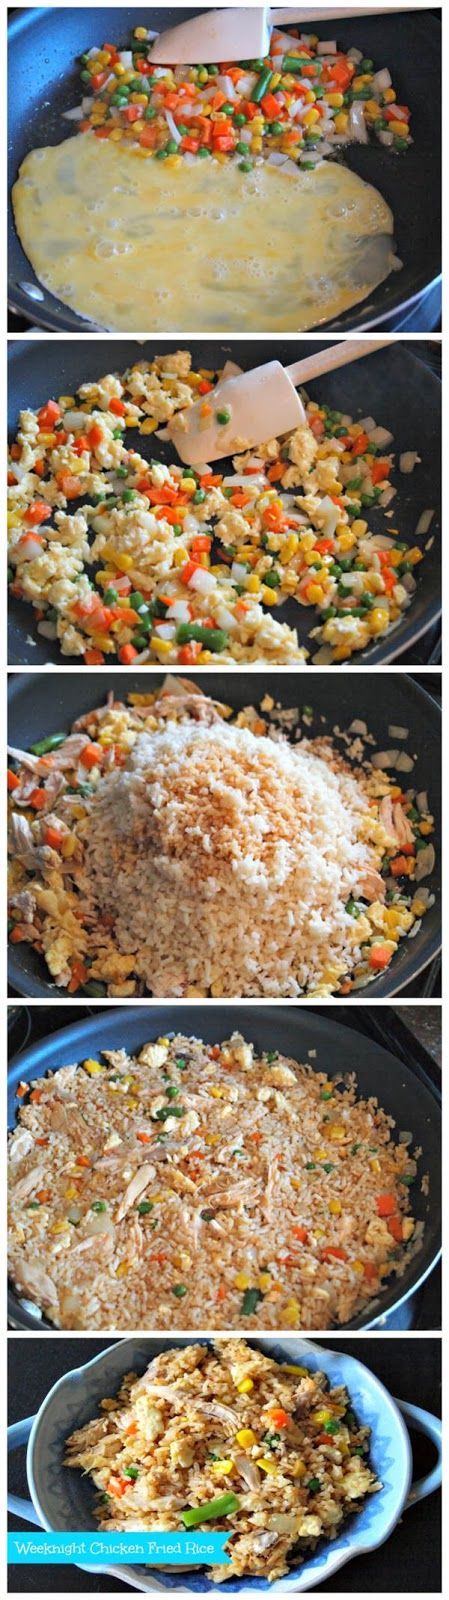 Weeknight Chicken Fried Rice:  3 cups cooked white rice 3 tbsp. sesame oil 1 cup frozen vegetables (like peas and carrots) 1 small onion, chopped 2 cloves garlic, minced 2 eggs, beaten lightly 1 cup cooked chicken, diced or shredded  1/4 cup soy sauce -